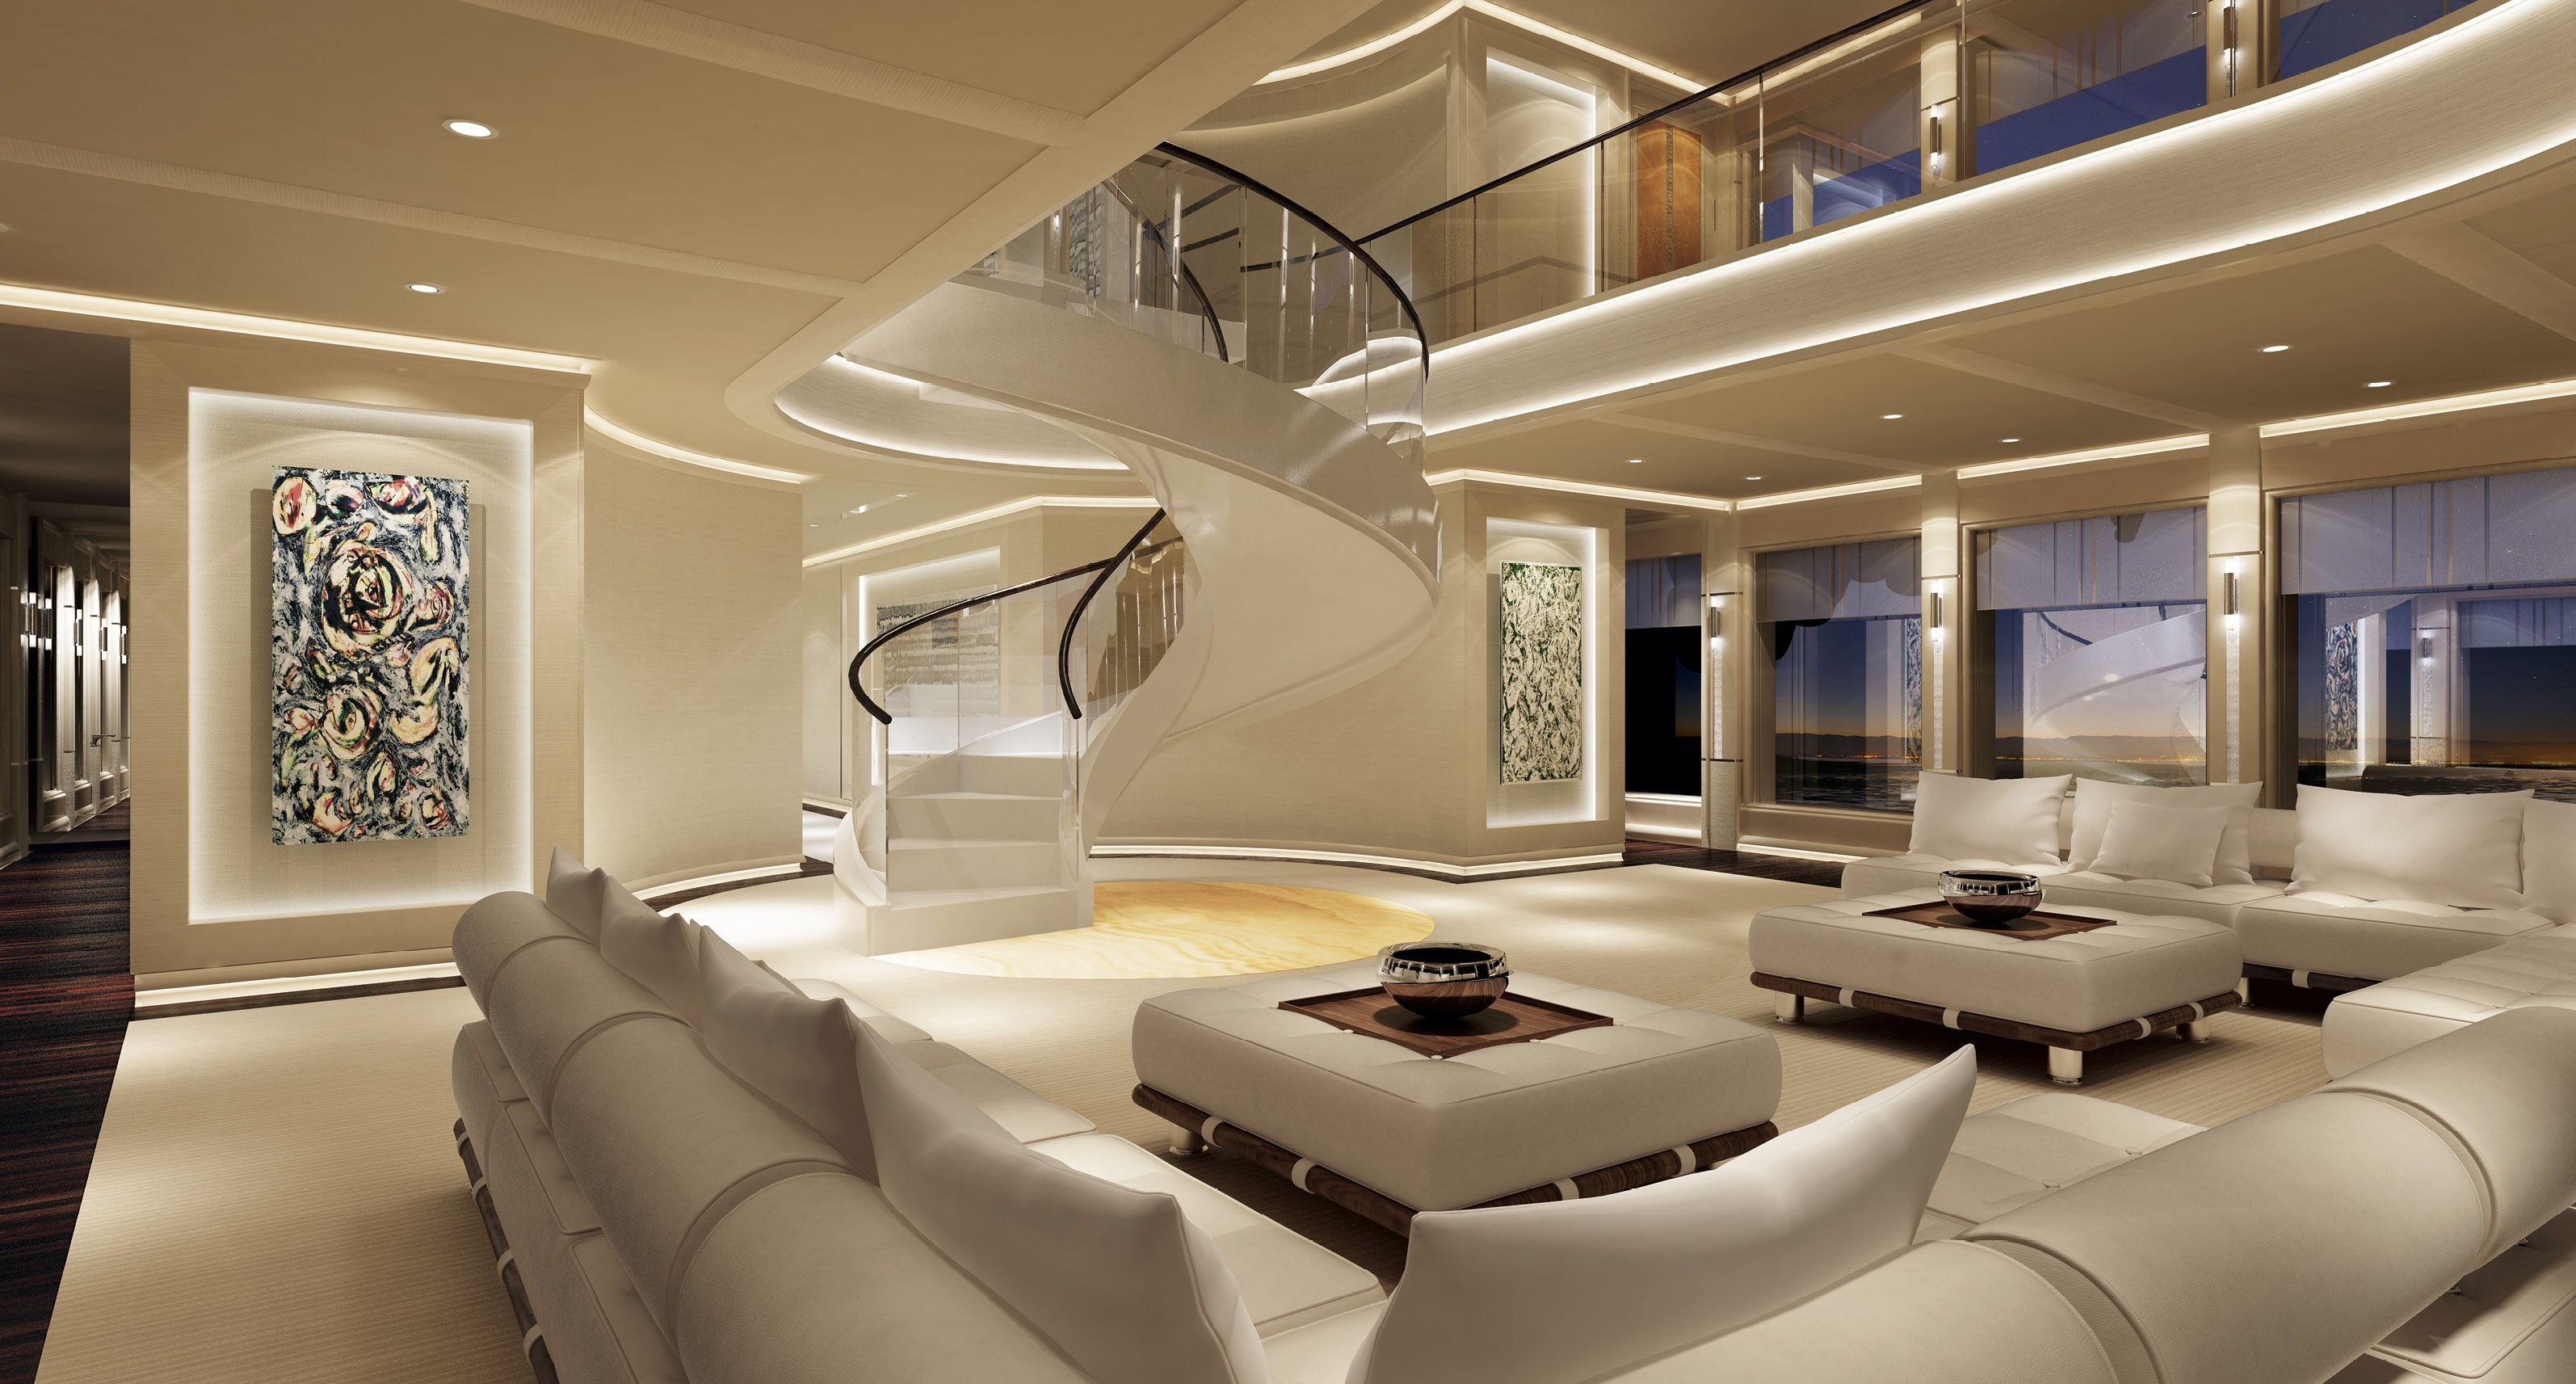 interior design sinot exclusive yacht design bateaux. Black Bedroom Furniture Sets. Home Design Ideas